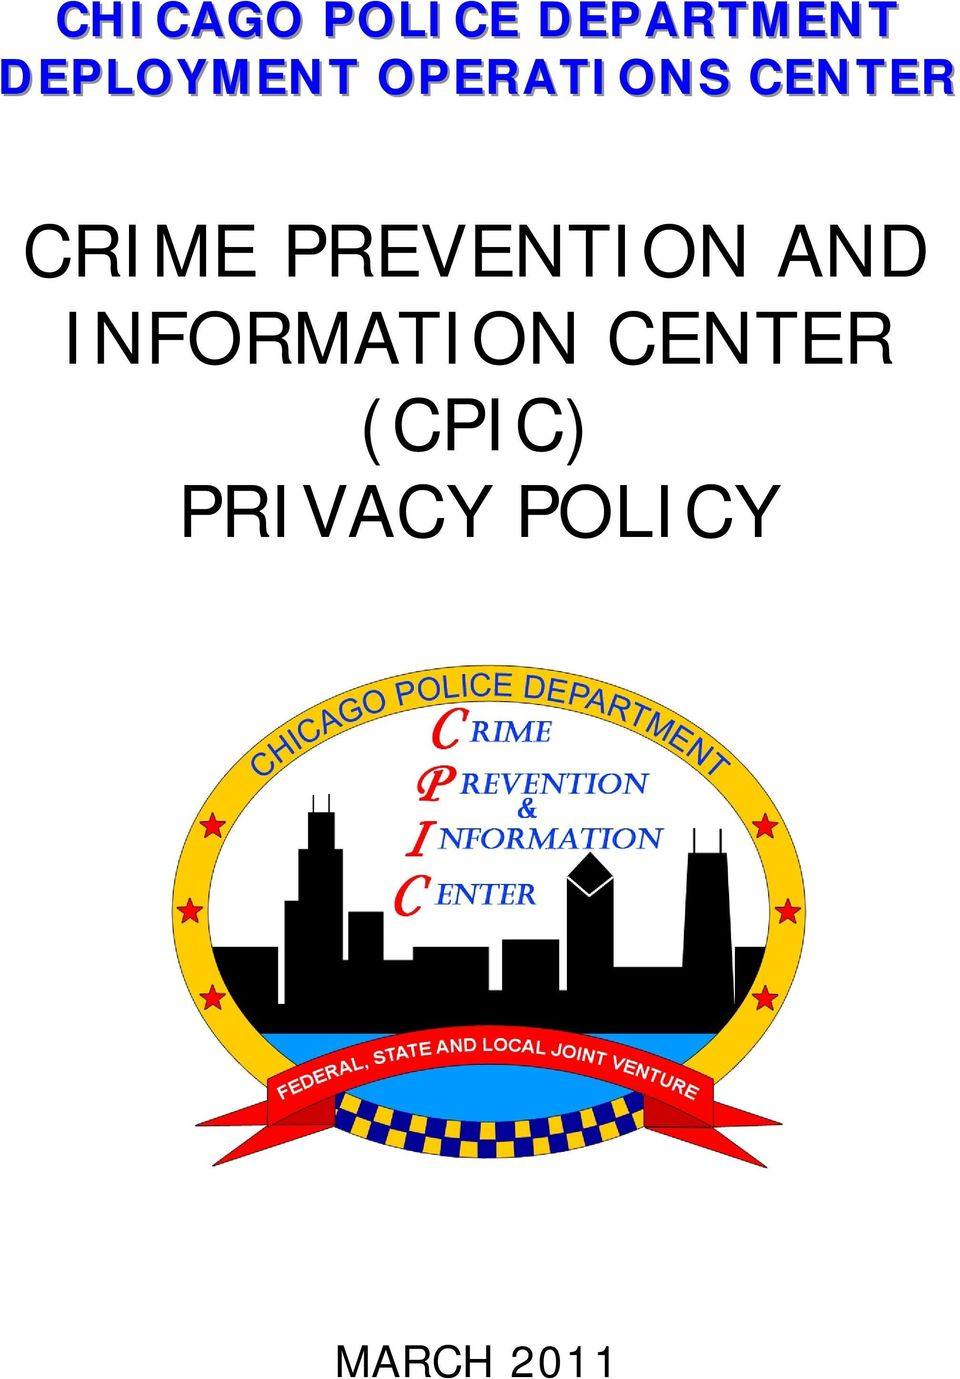 CRIME PREVENTION AND INFORMATION